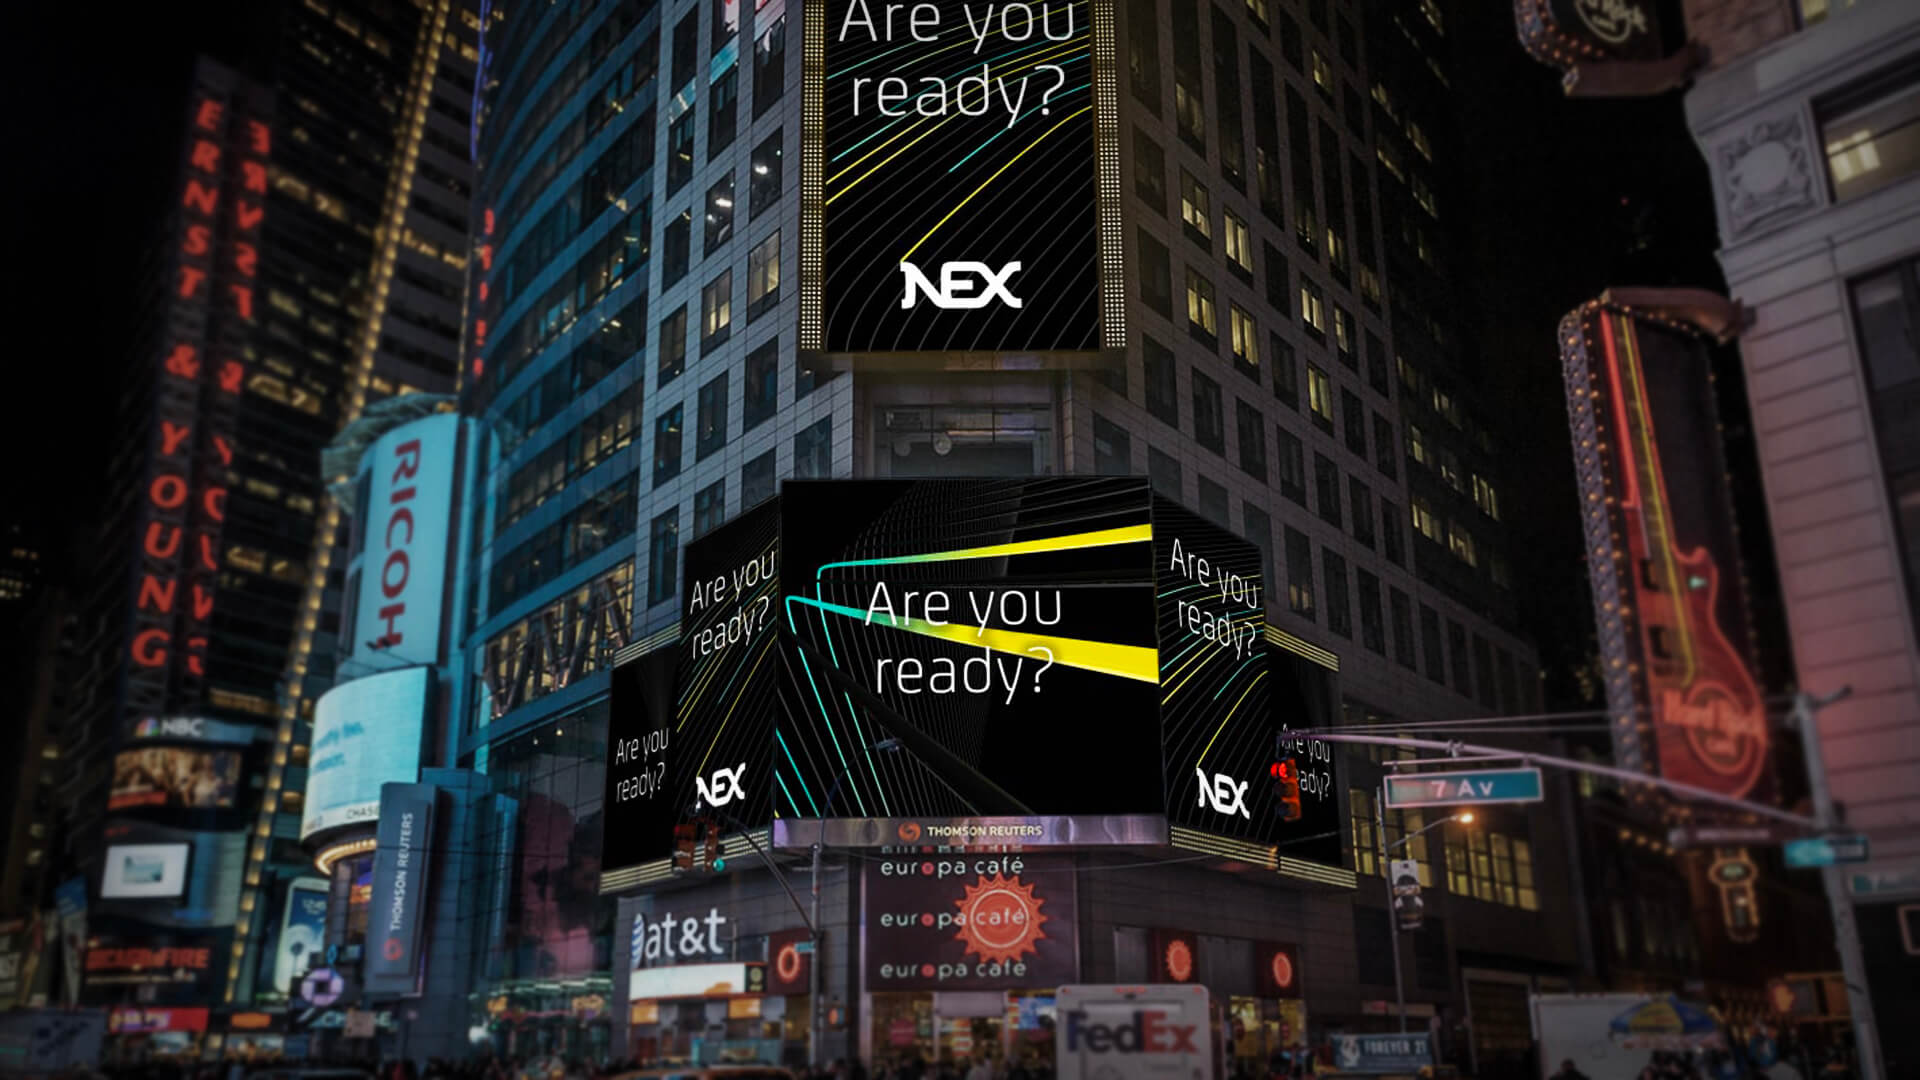 nex brand launch times square animated digital ads